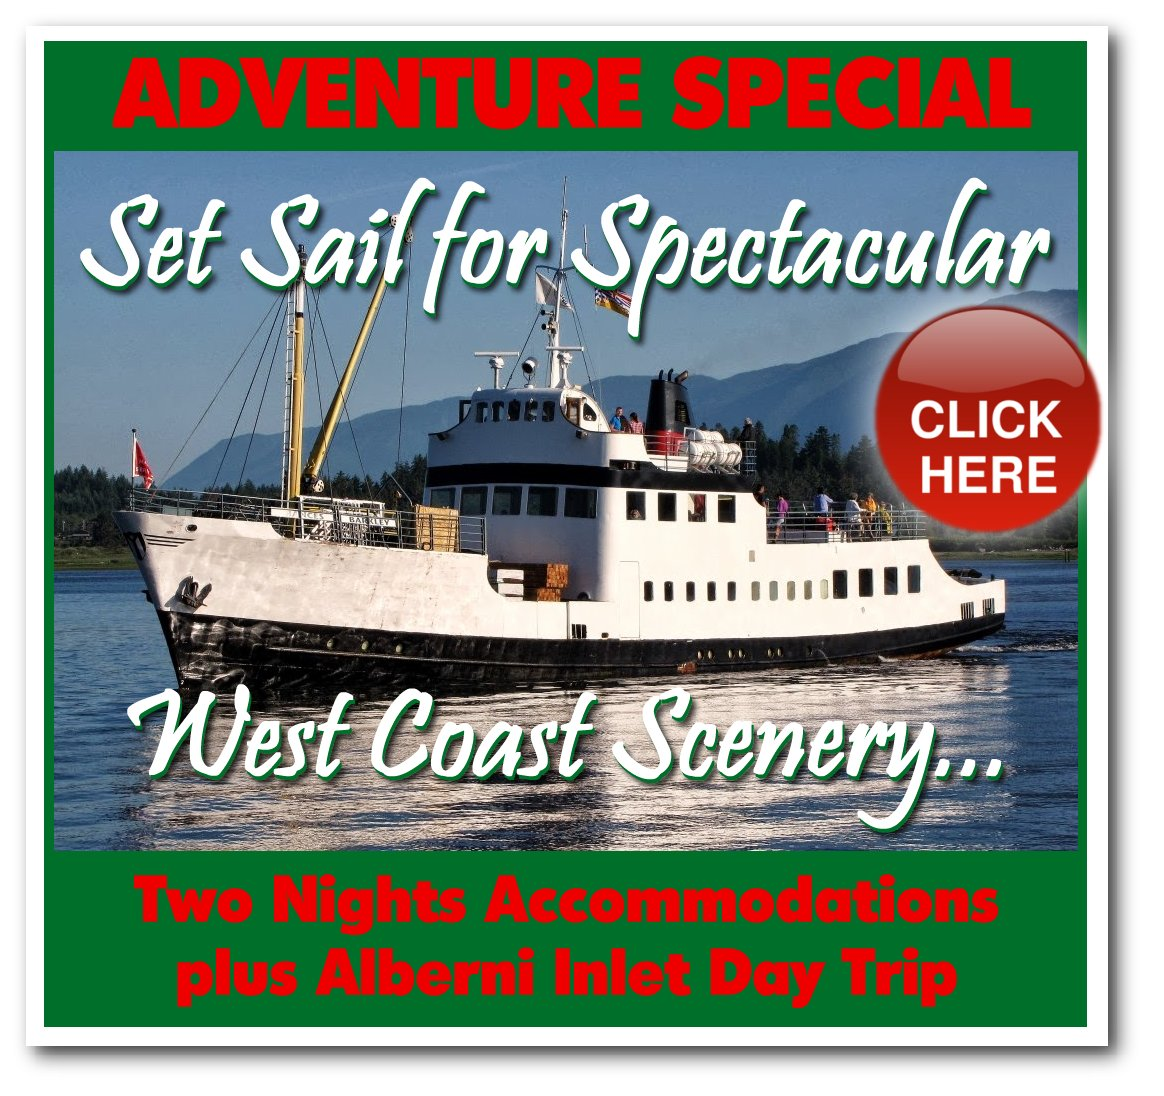 Edelweiss Bed and Breakfast Adventure Special